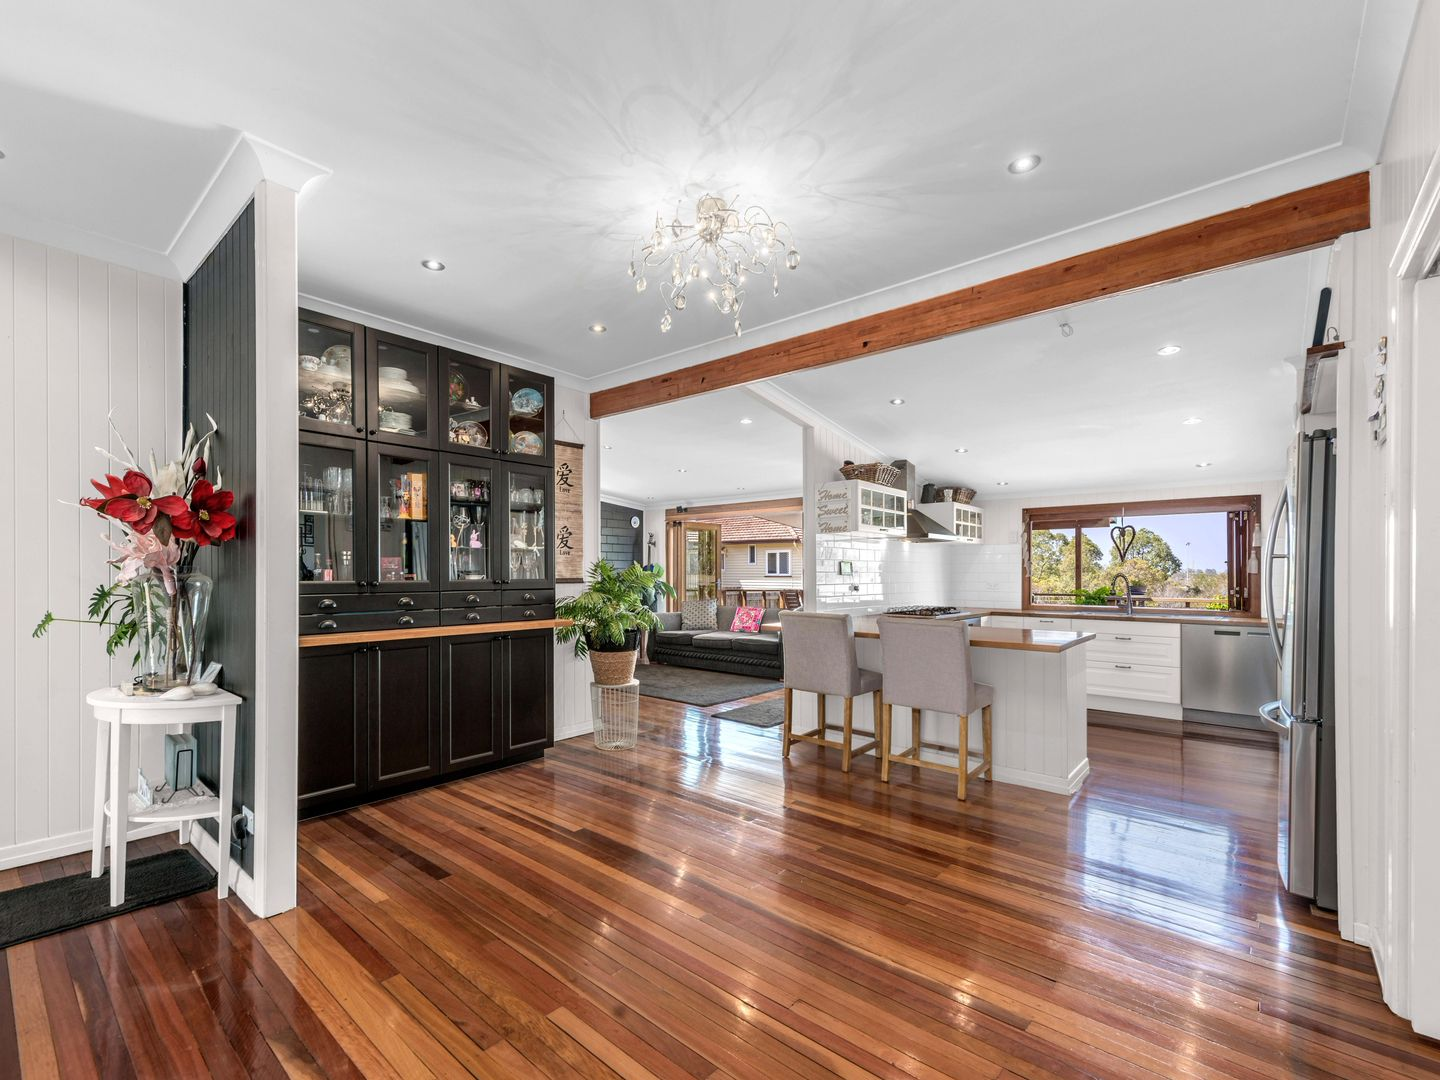 53 Thompson Street, Zillmere QLD 4034, Image 0